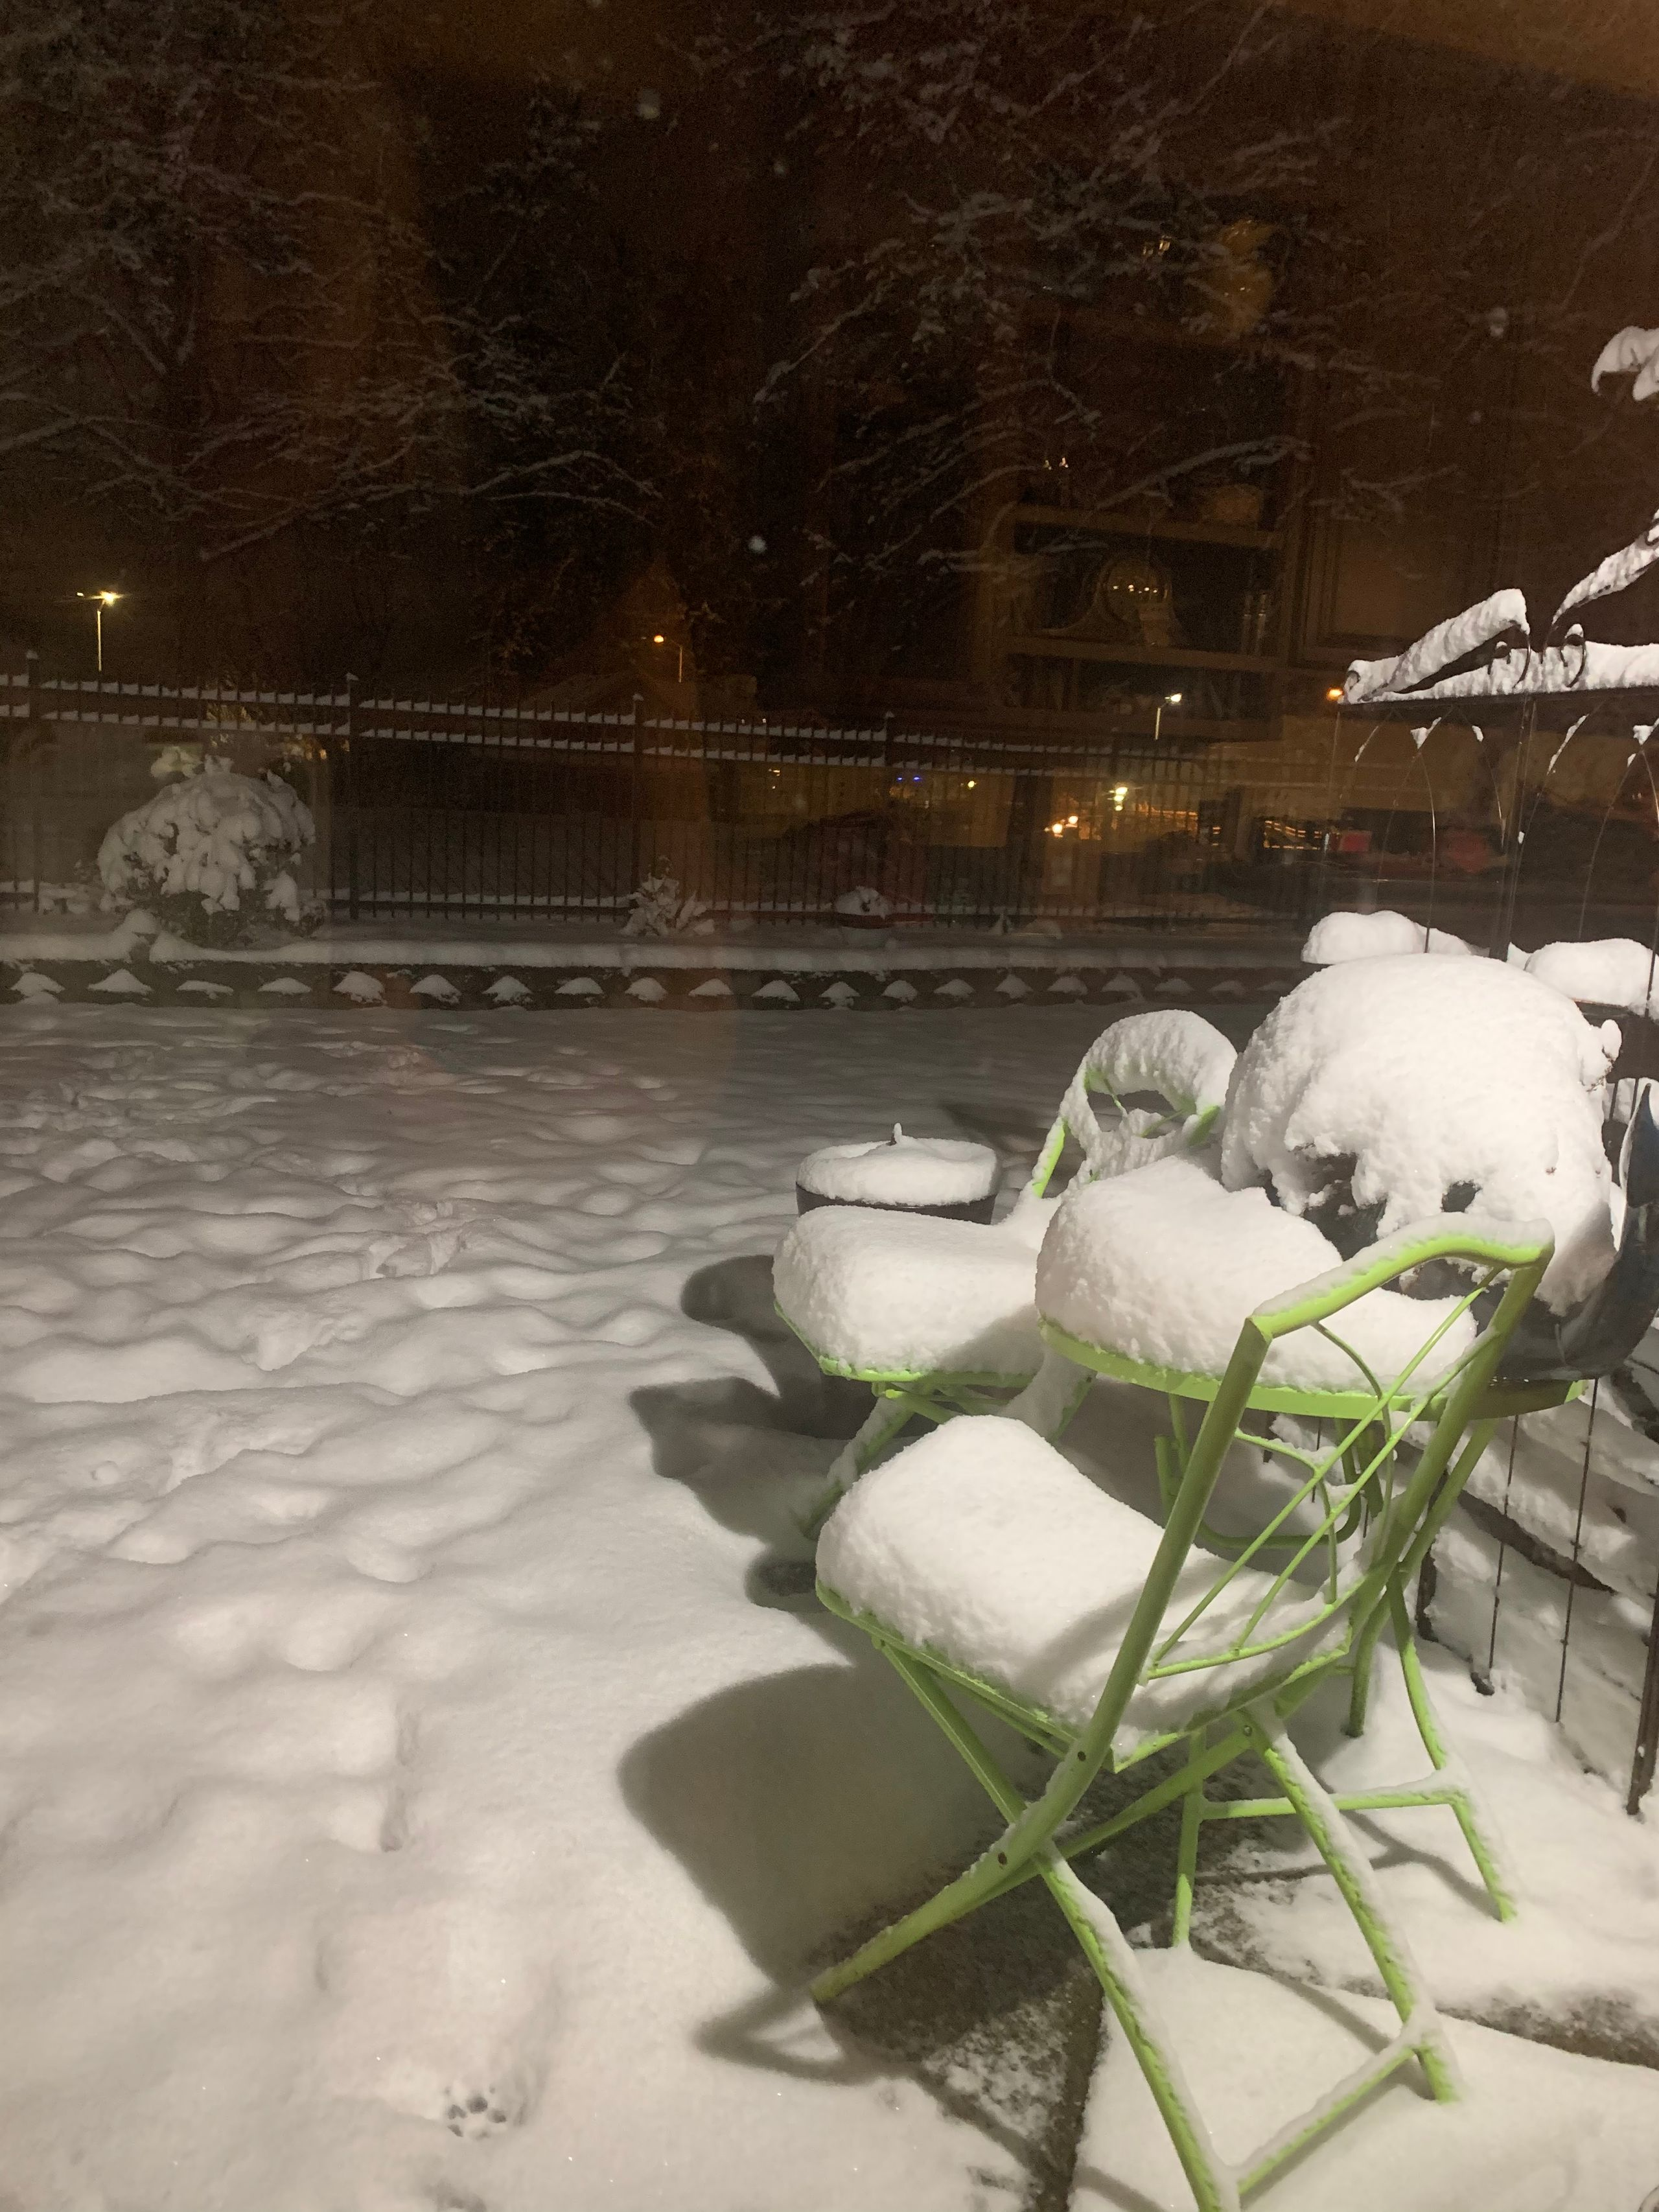 Snow in Olympia on Friday morning (Image: B. Carter / Chime In)